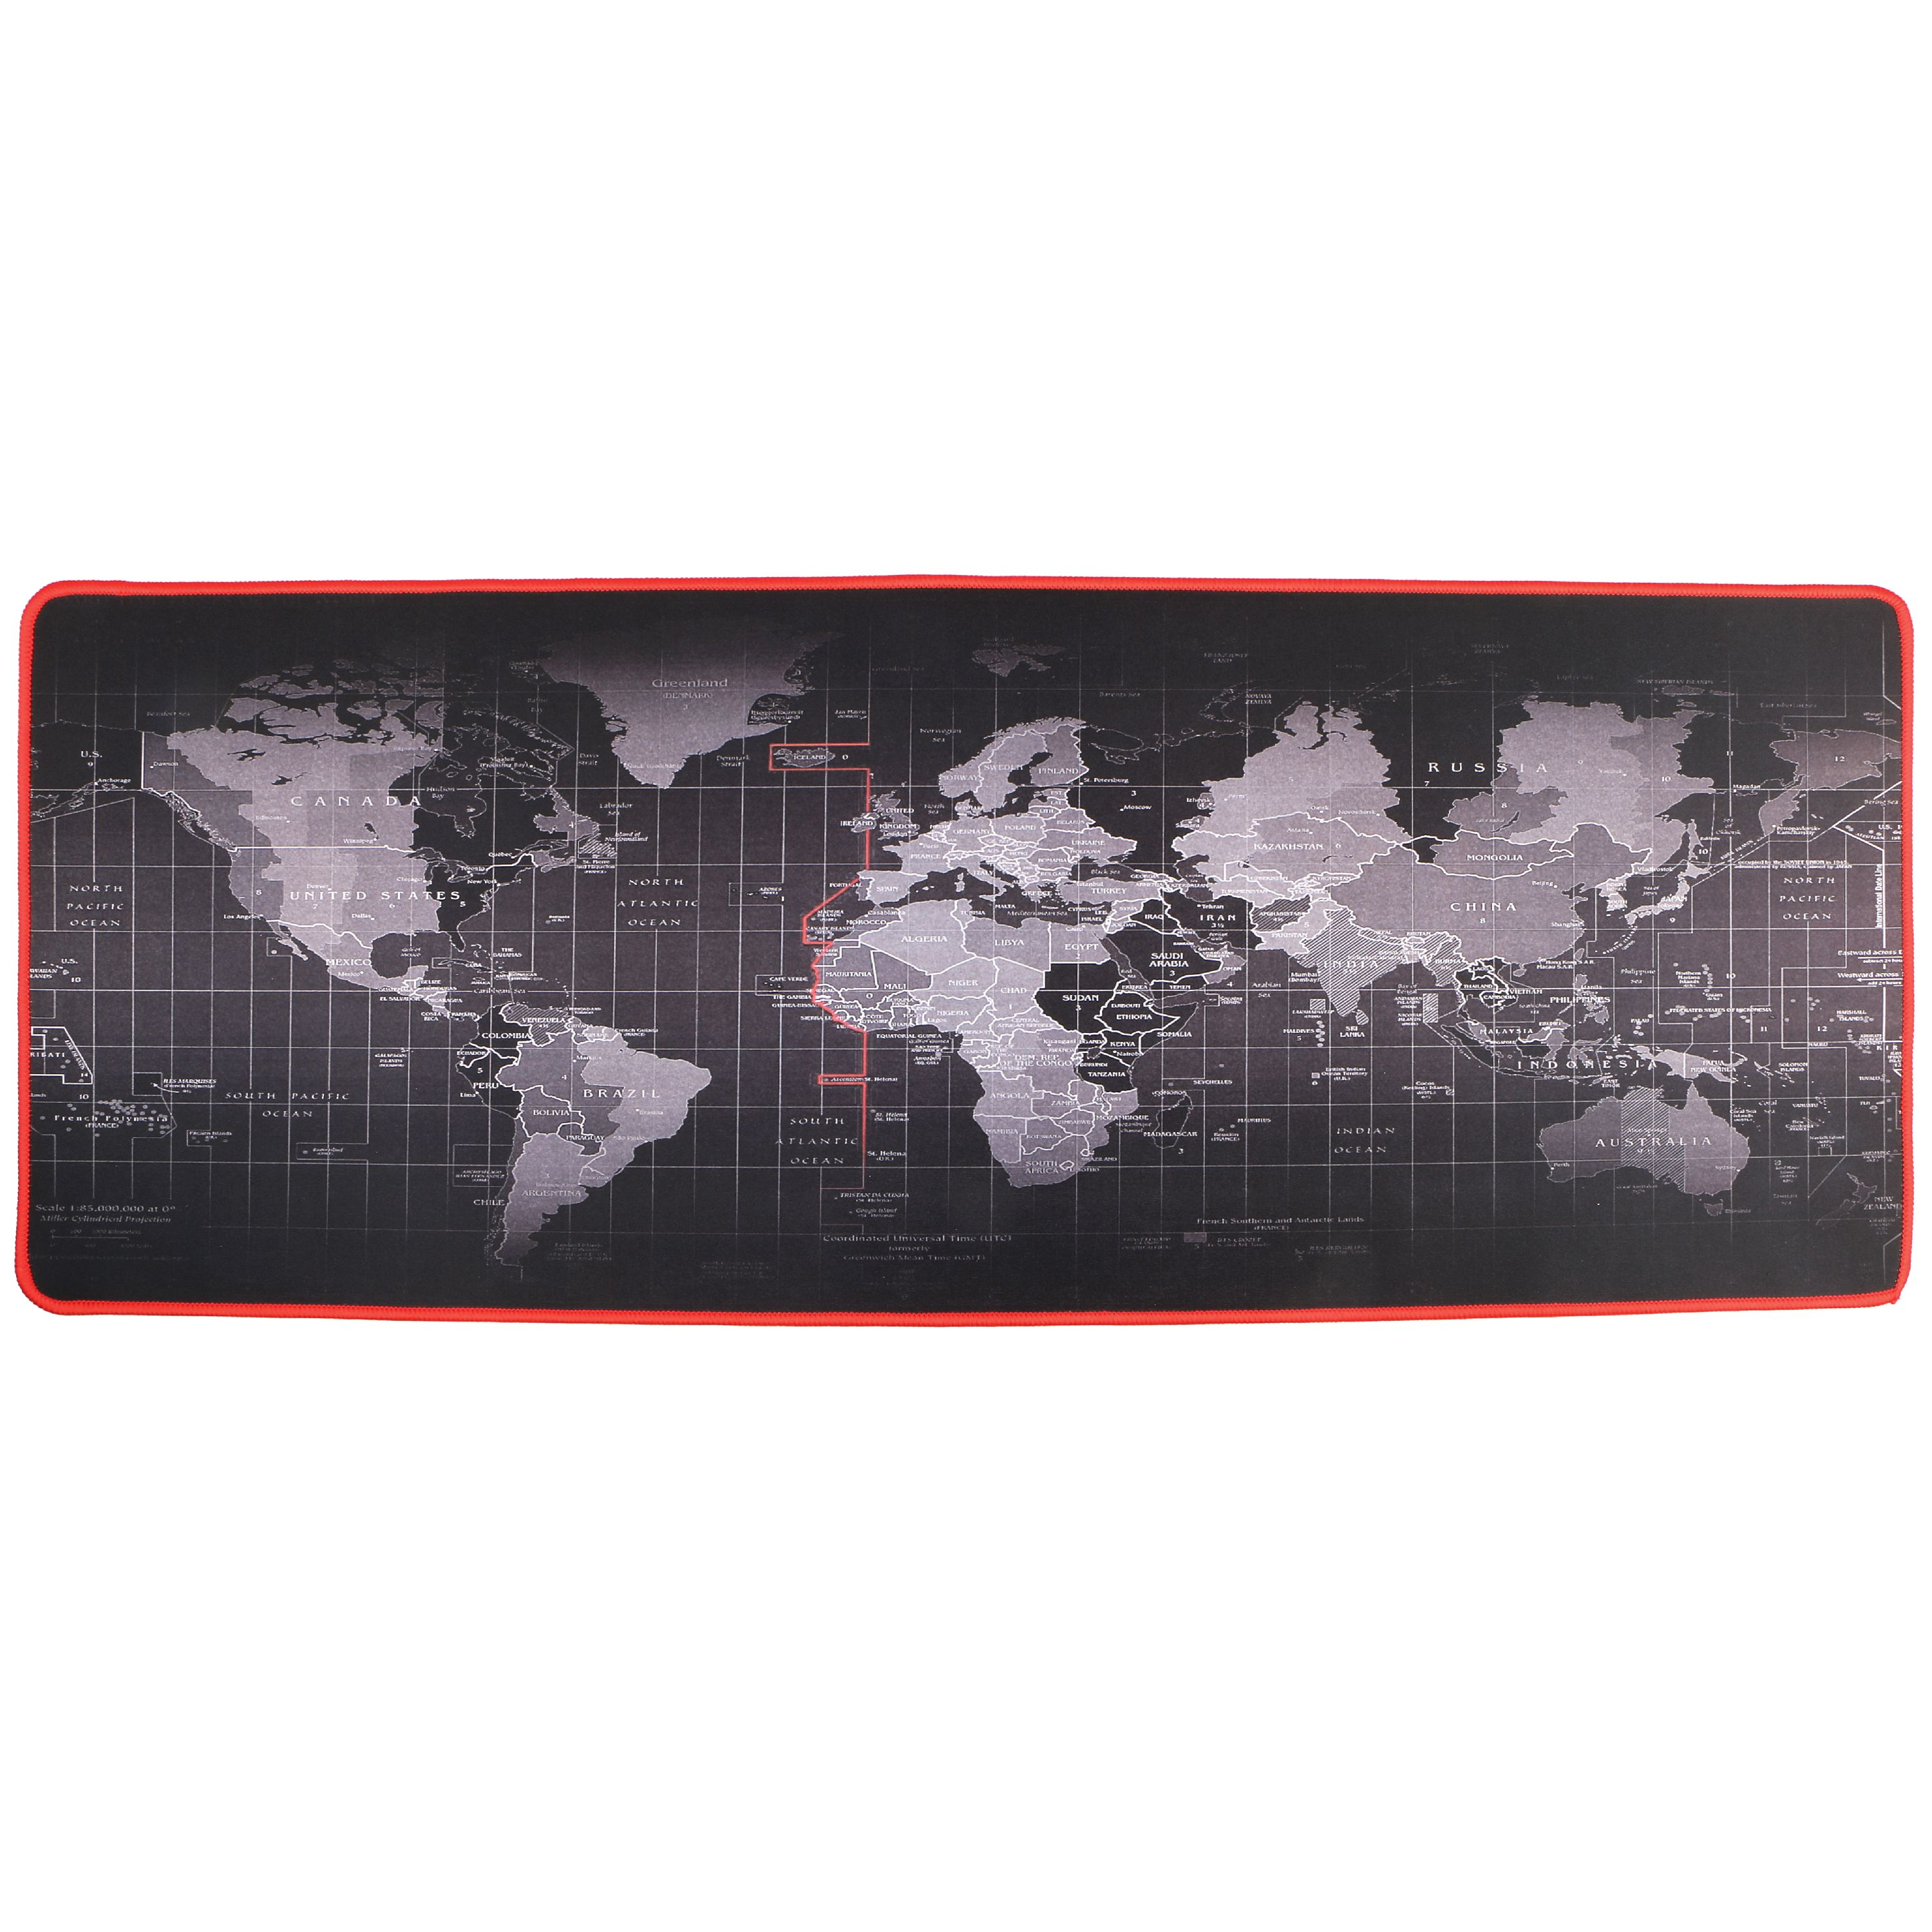 TSV Large Rubber Game Overwatch Mouse pad Gaming keyboard mousepad 80*30cm L XL Special Treated Textured Weave with Precision Control (world map)